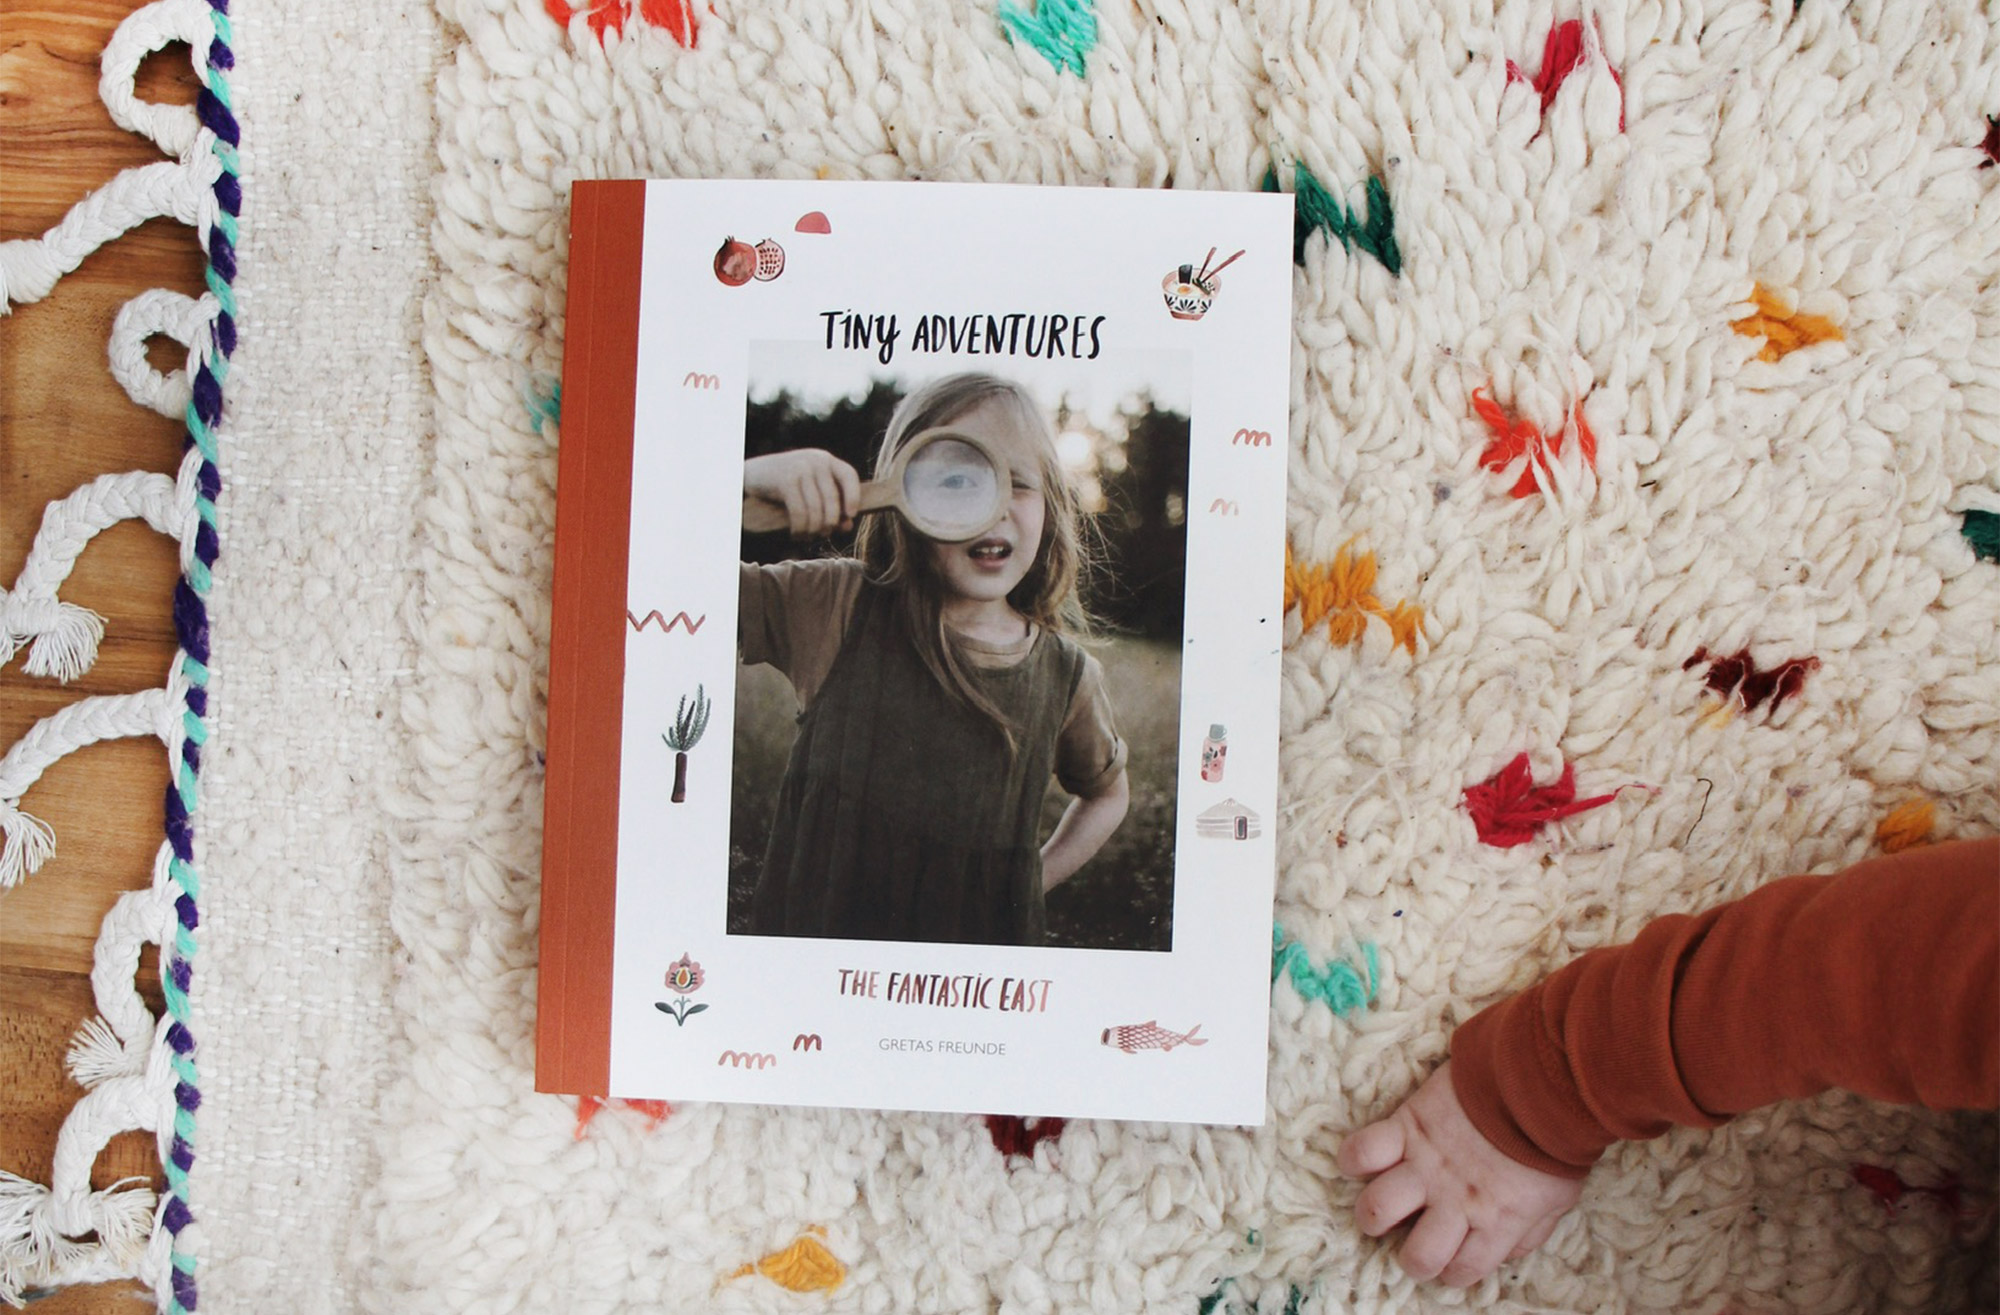 Tiny Adventues - The Fantastic East zur Verlosung